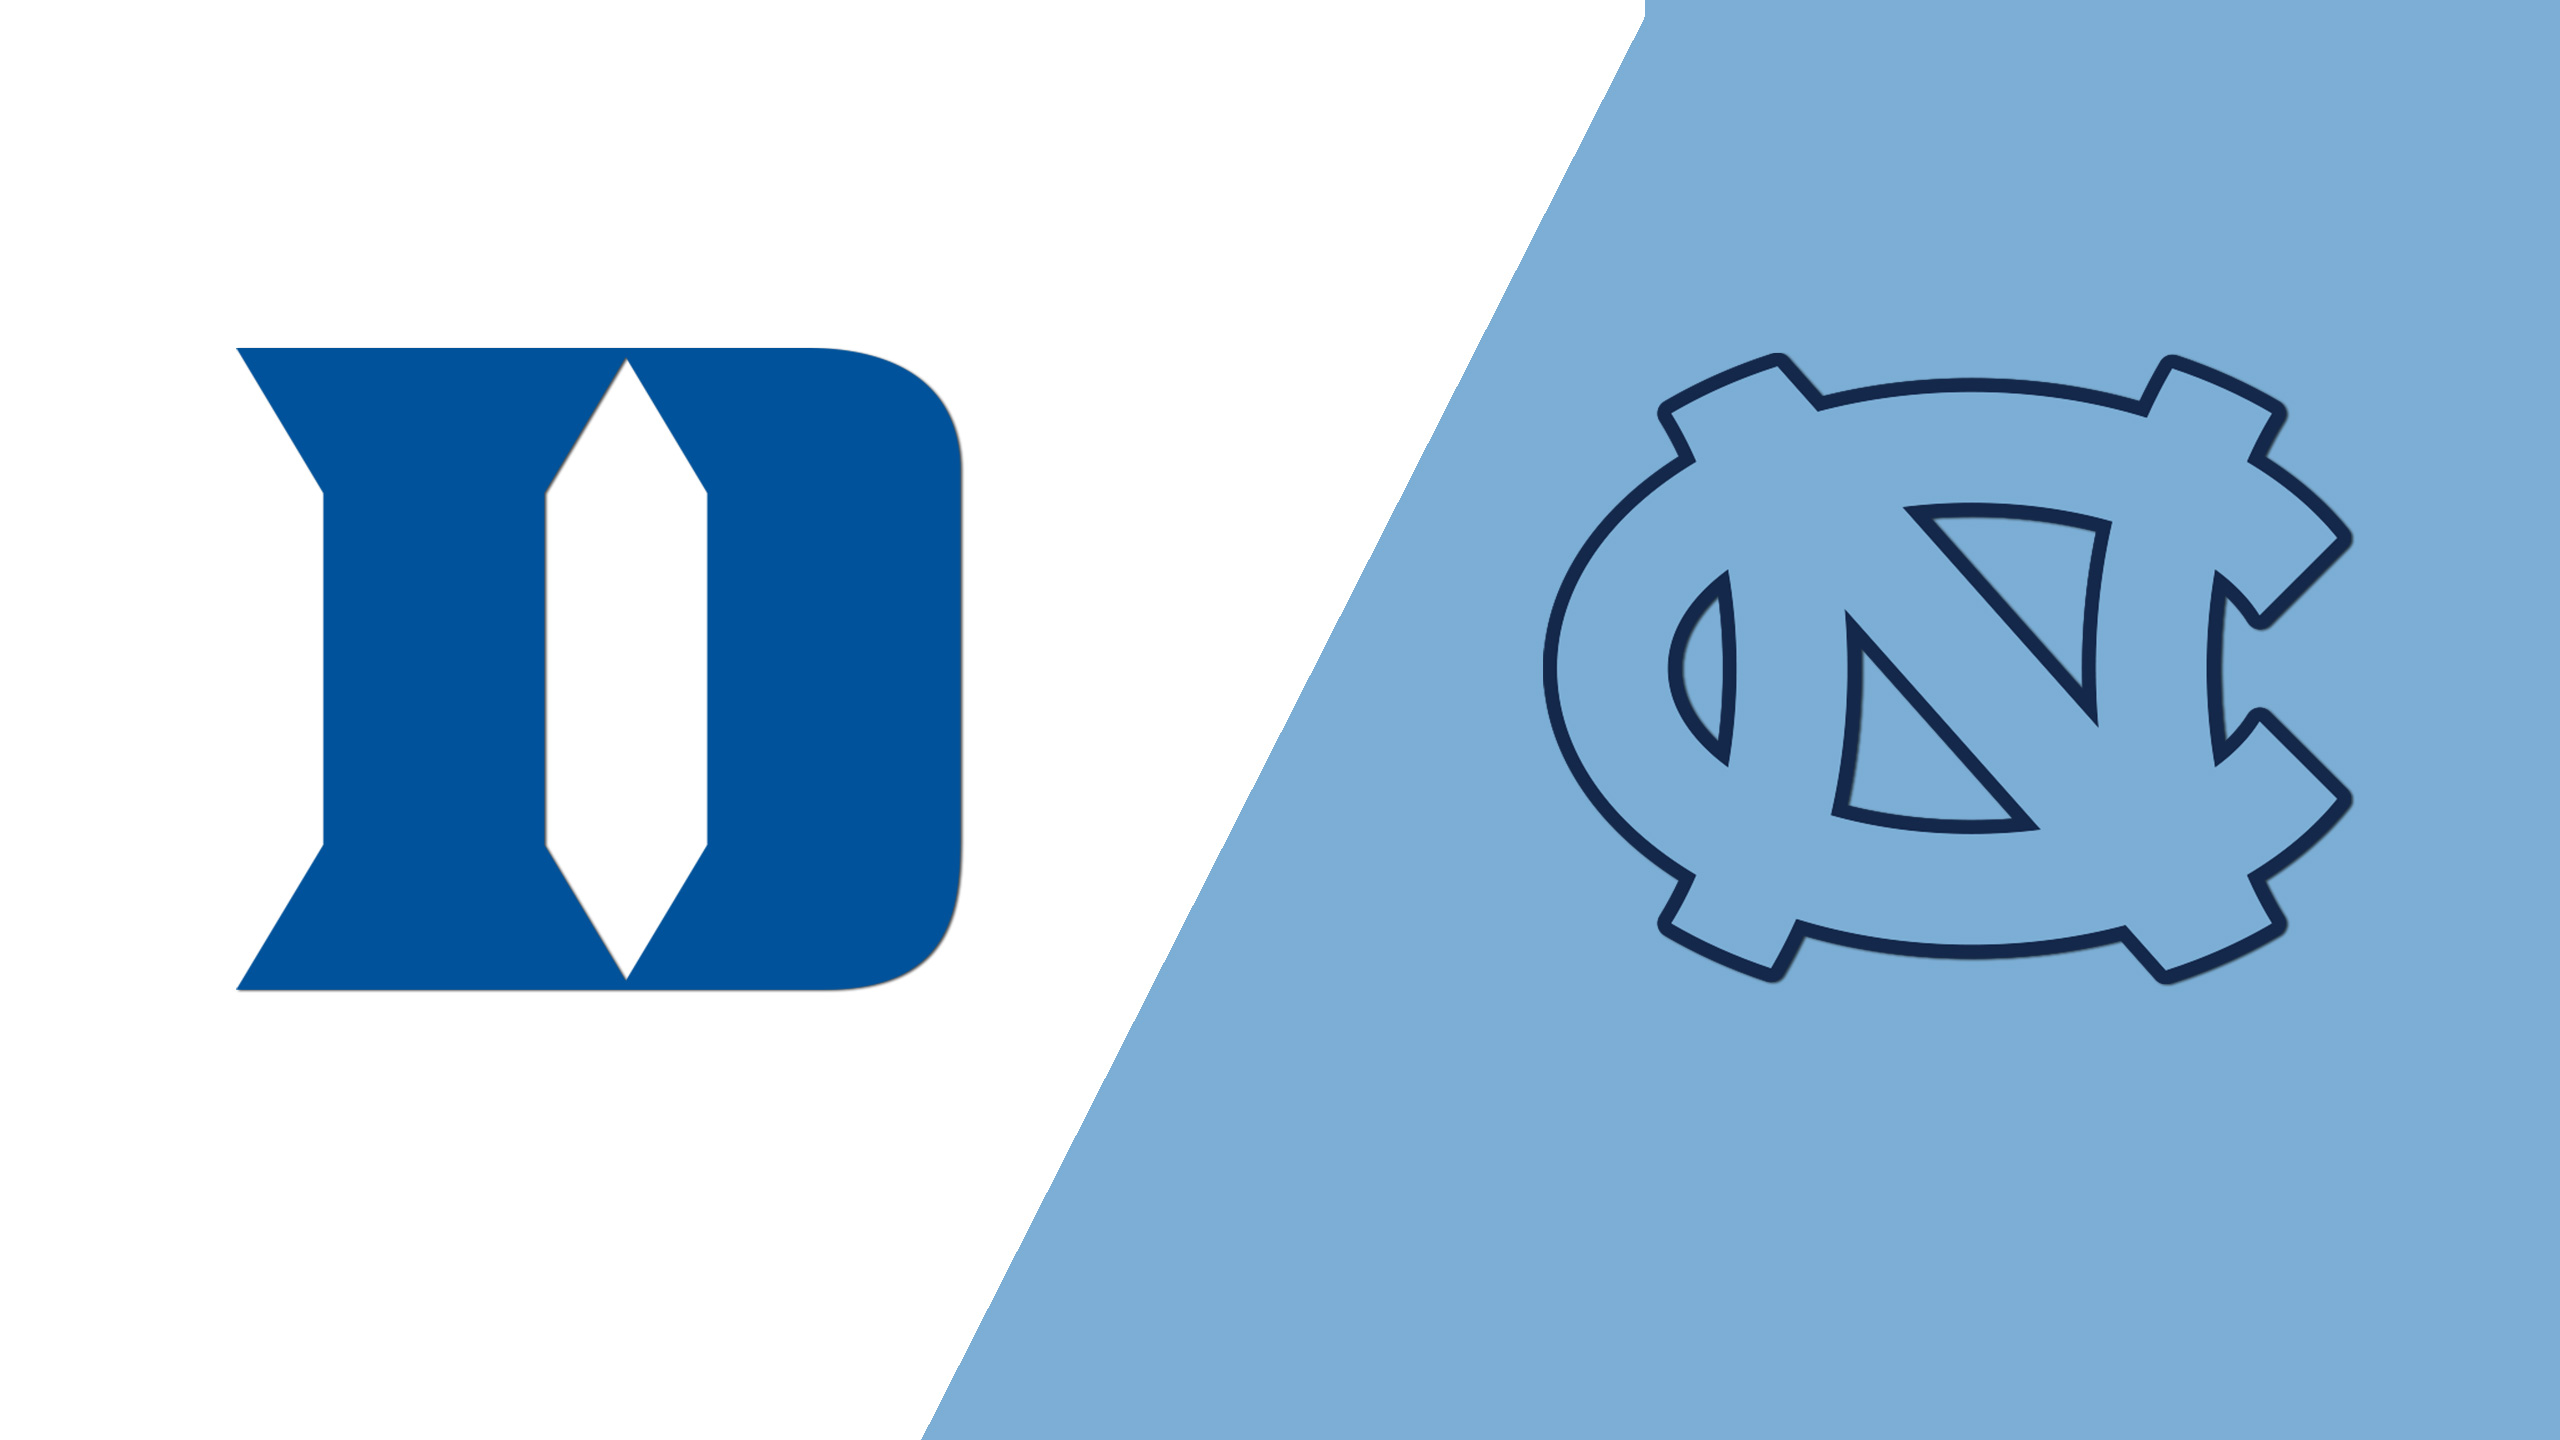 #8 Duke vs. #4 North Carolina (ACC Men's Soccer Championship)